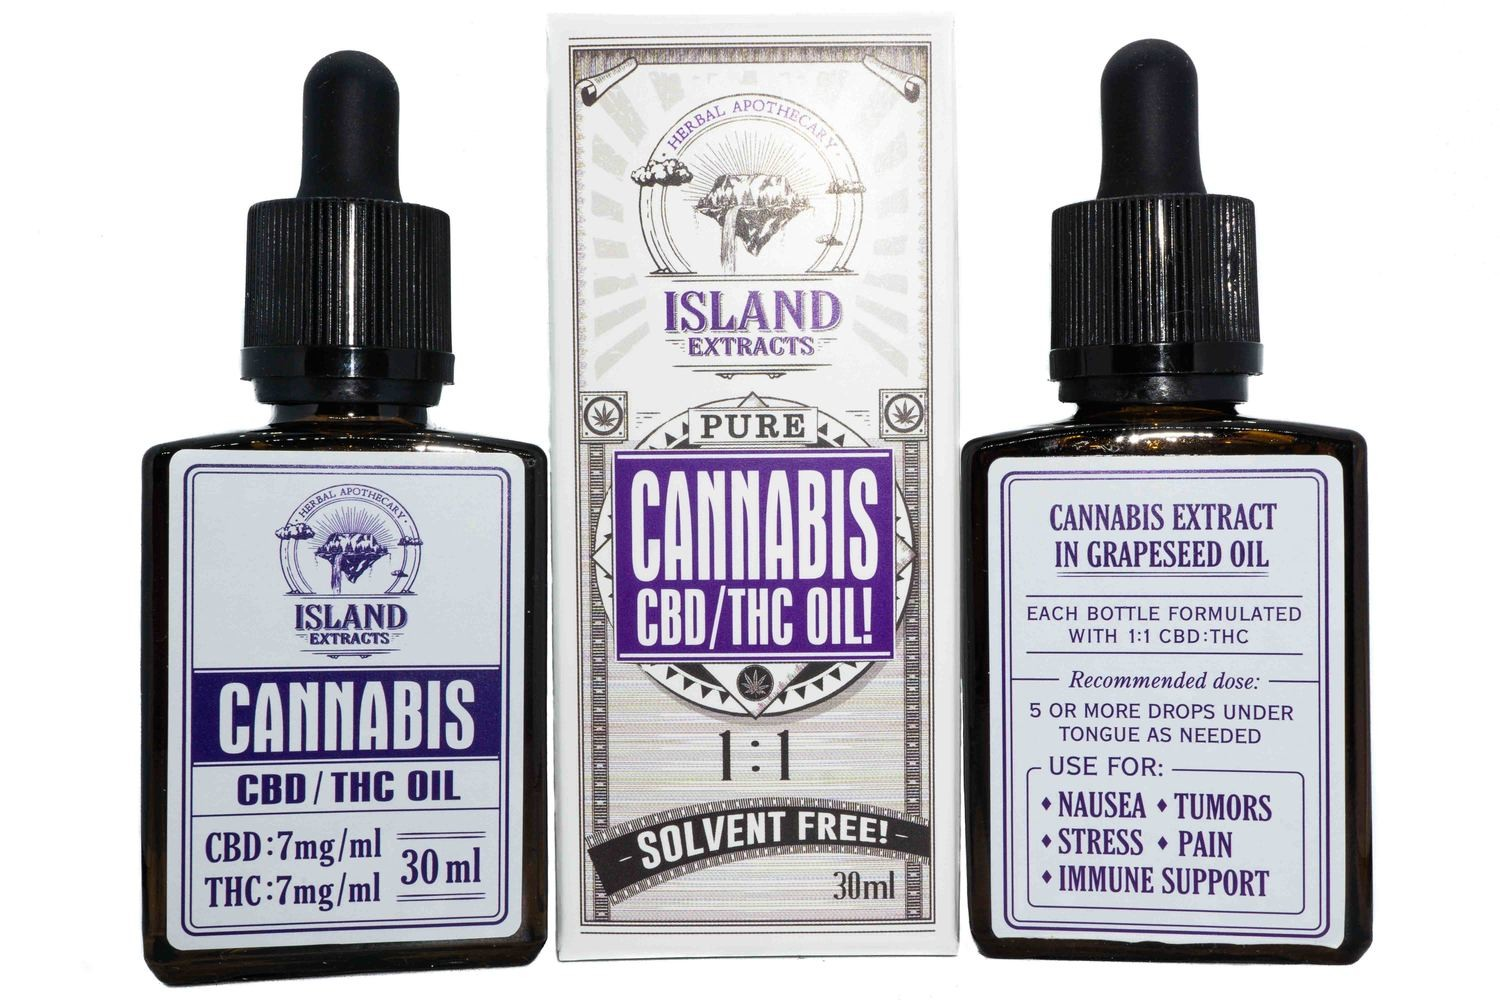 210mg CBD: 210mg THC Tincture (Full Spectrum) (30ml) by Island Extracts